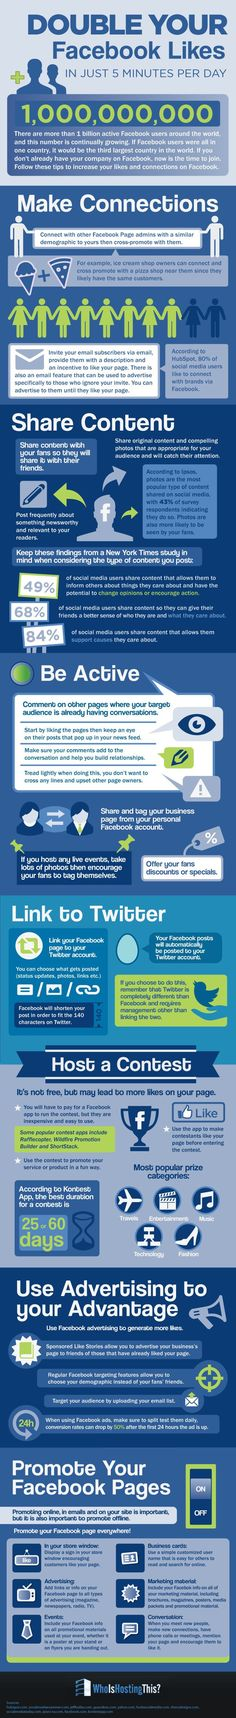 Double Your Facebook Page Likes in Just 5 Minutes a Day [Infographic].   .. . . Please Like before you RePin... Sponsored by International Travel Reviews - World Travel Writers and Photographers Group. We focus on writing Reviews & taking Photos for the Travel & Tourism Industry and Historical Sites clients. Rick Stoneking Sr. Owner/Founder